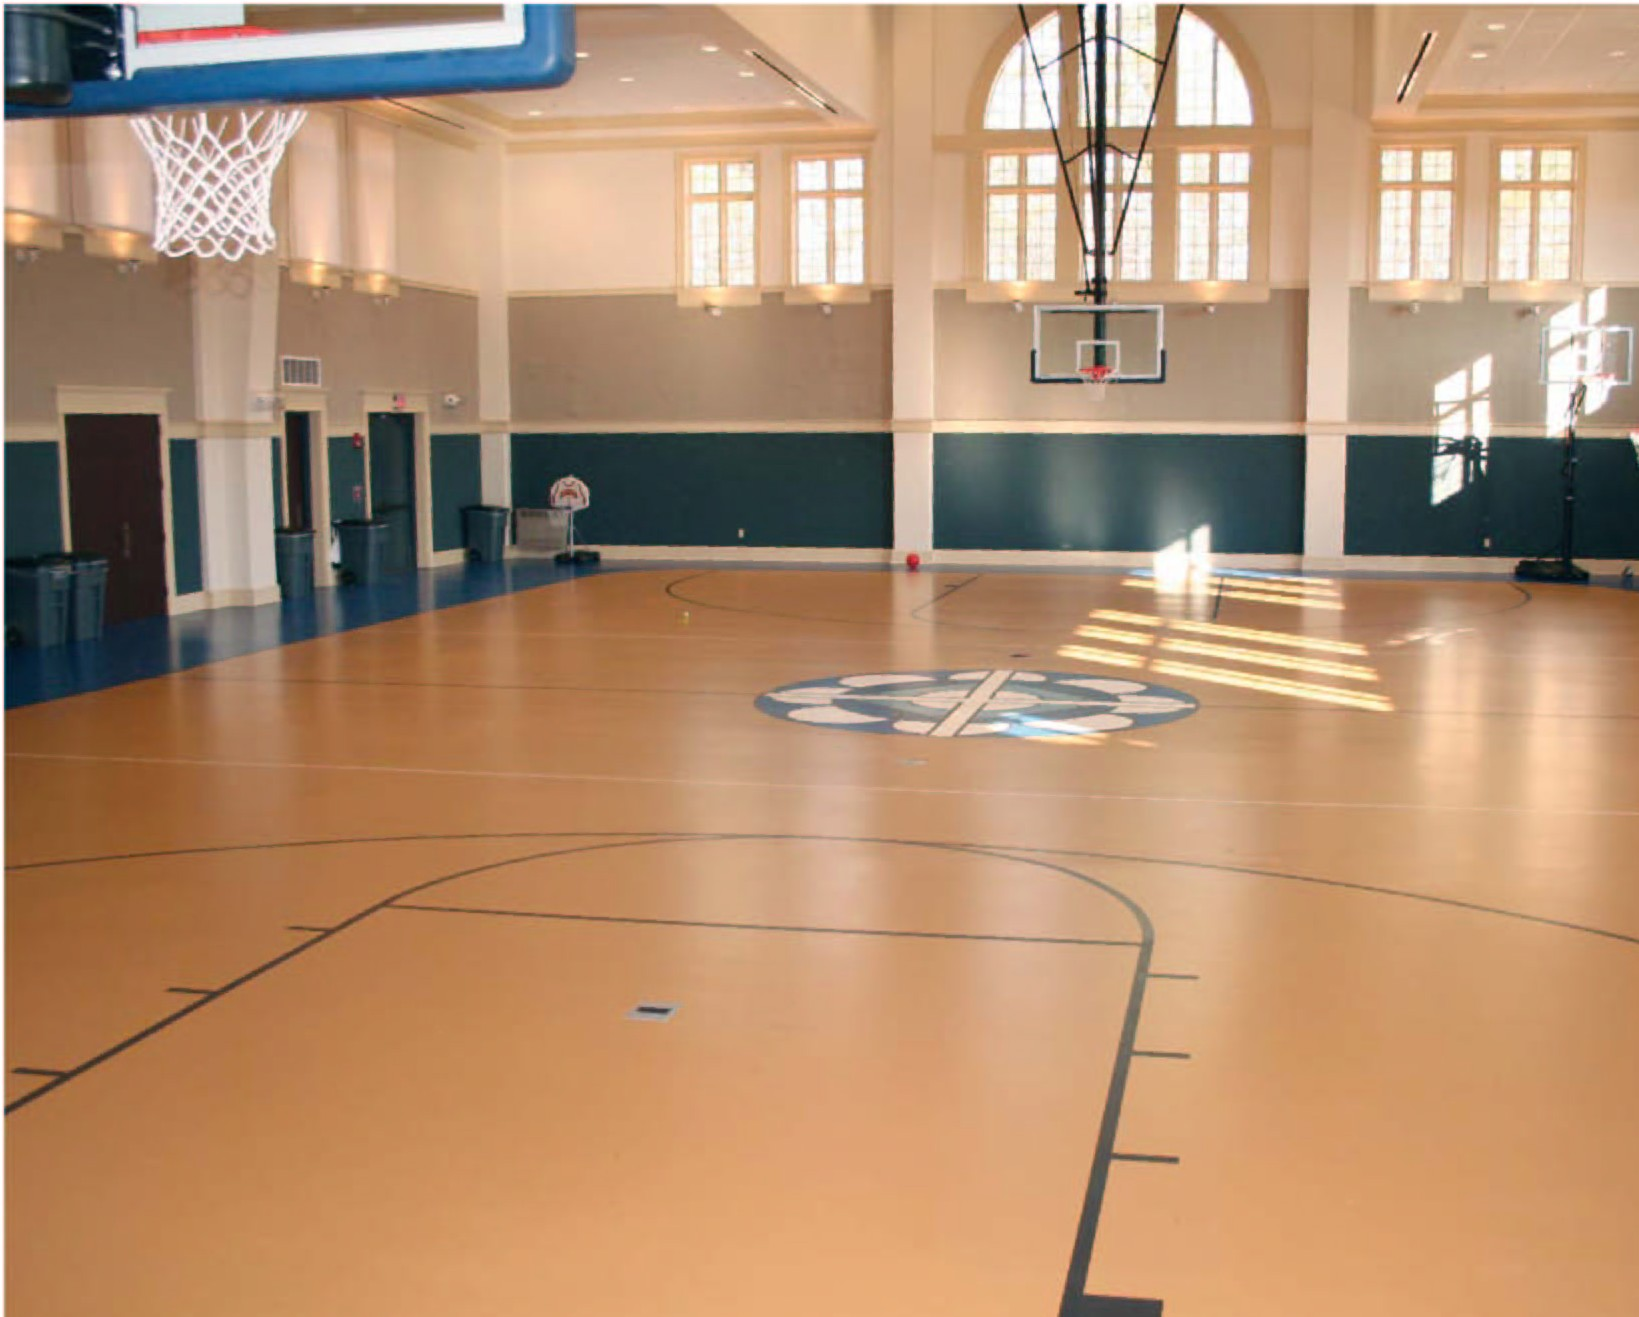 Gymnasium floor and gym covers at vinylflooring ae